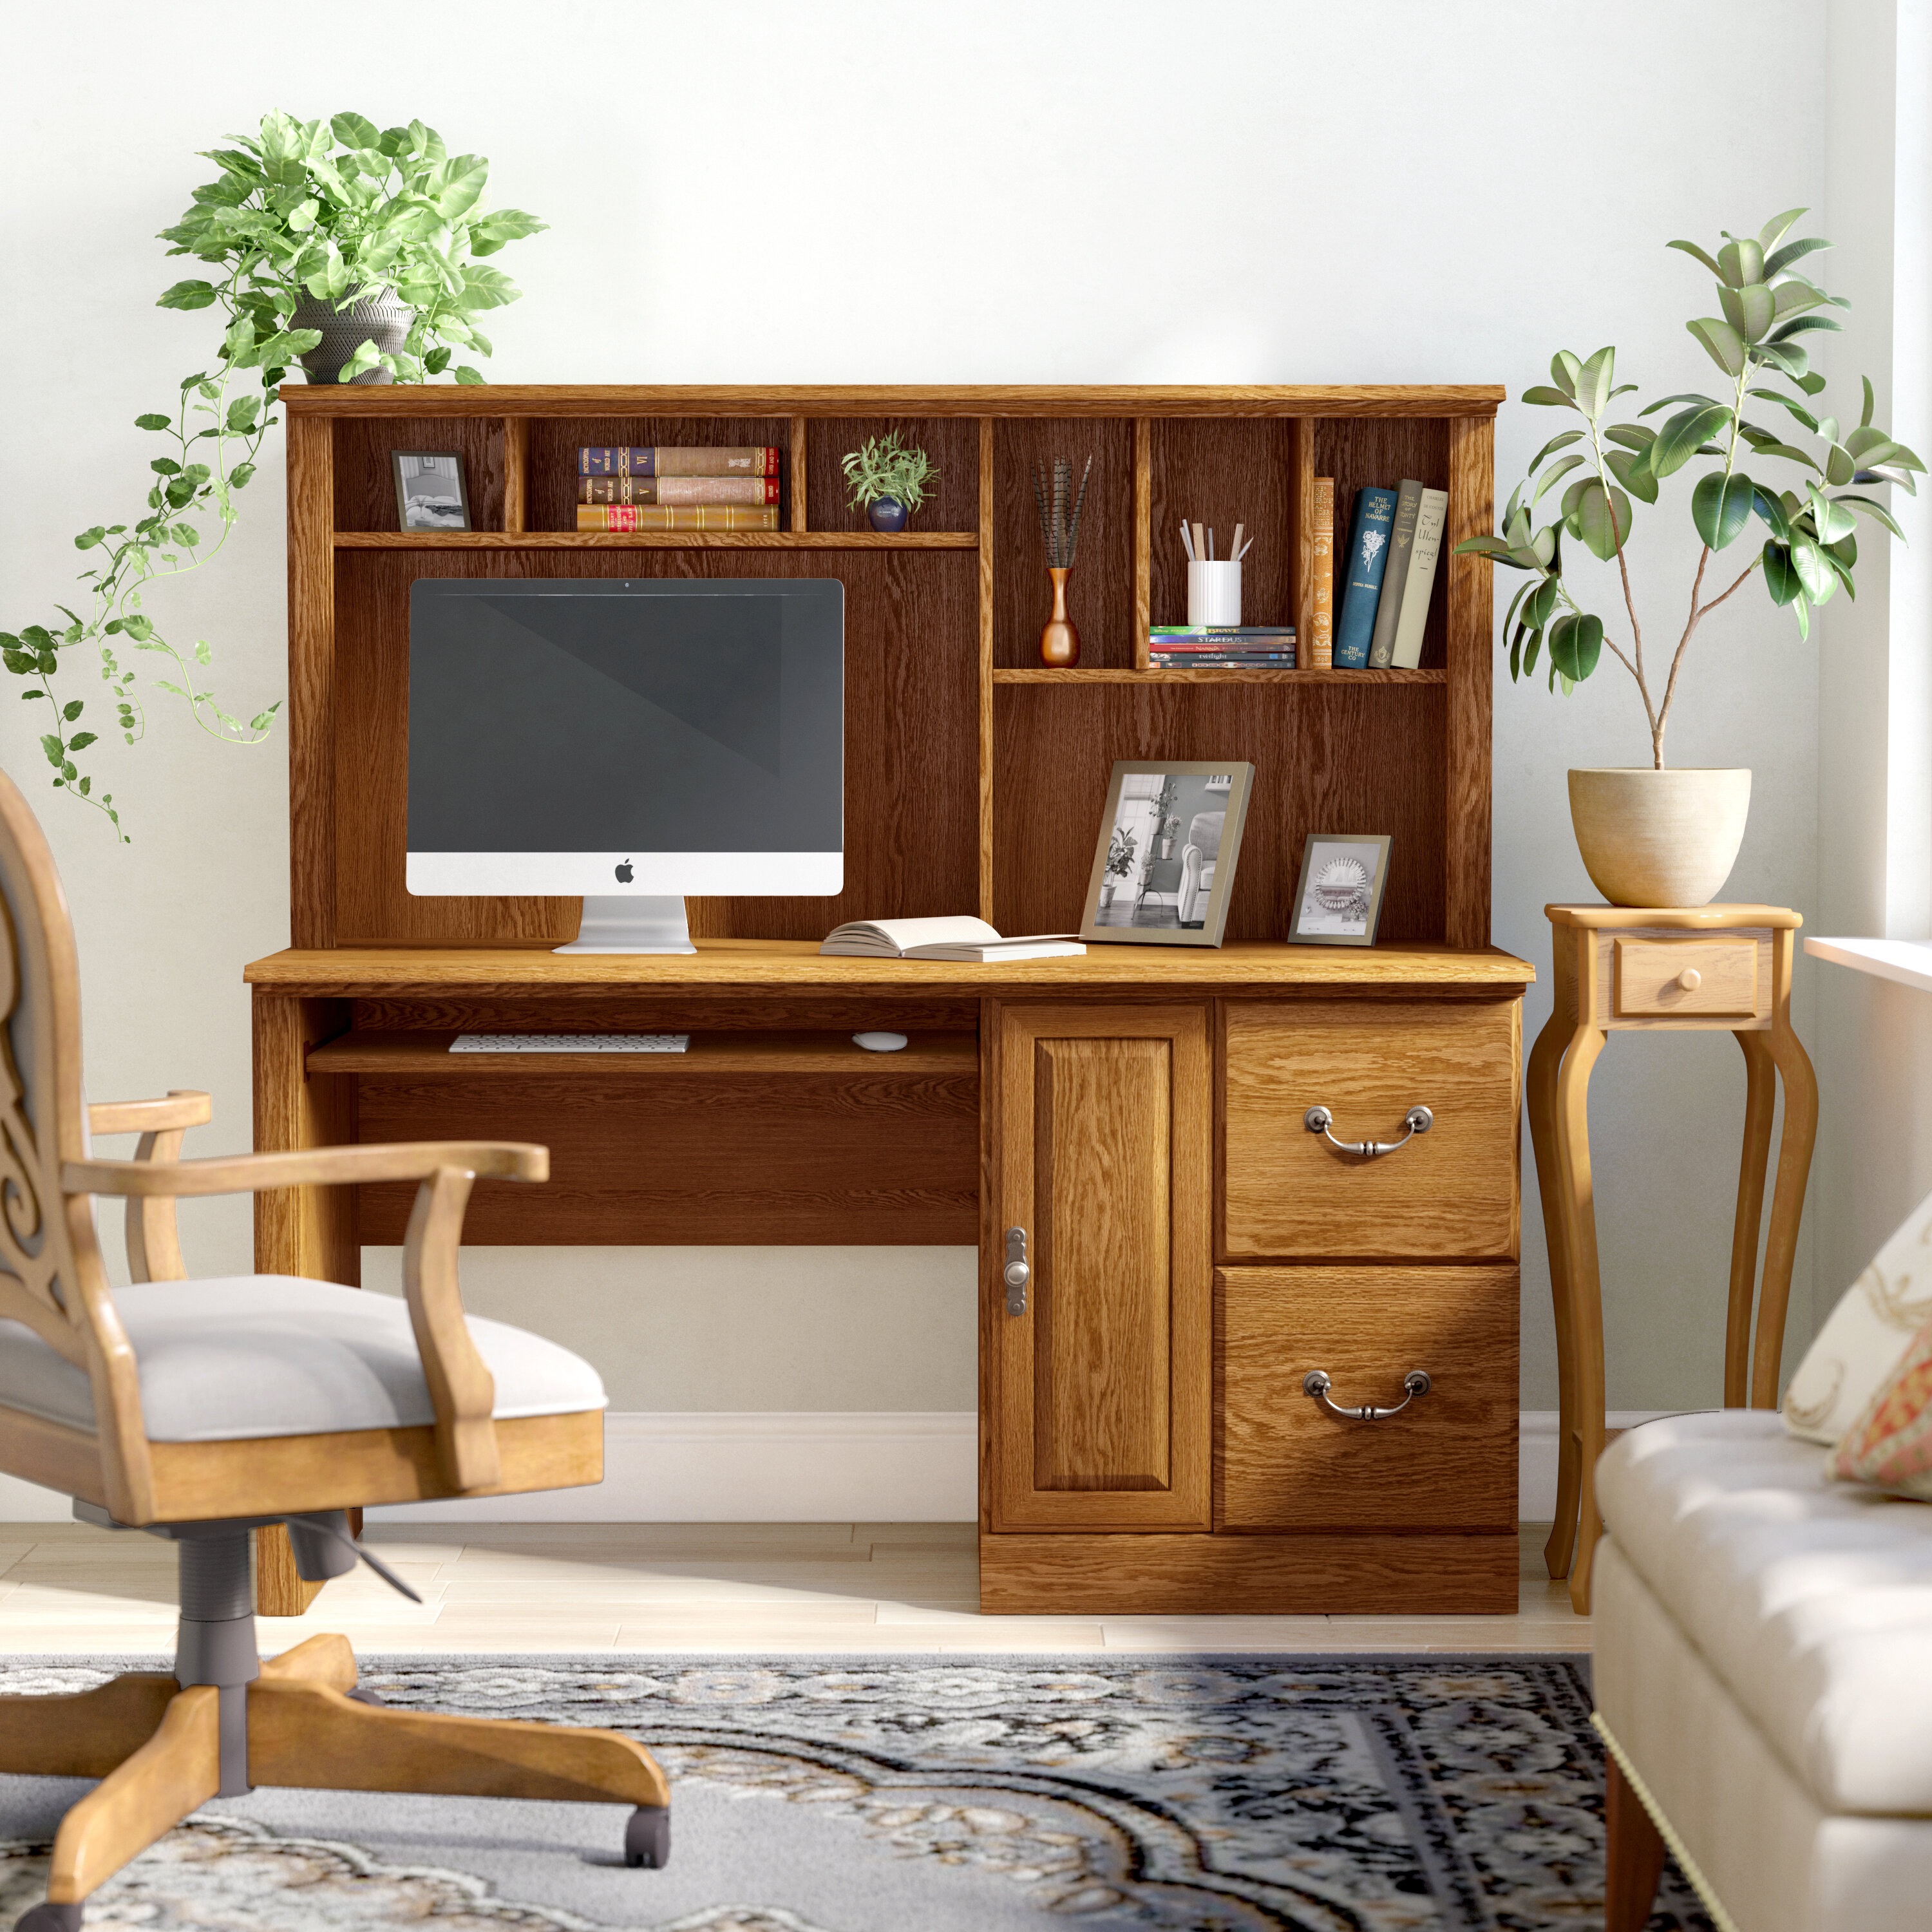 desks with desk image computer ideas and popular furniture drawers decor hutch of home